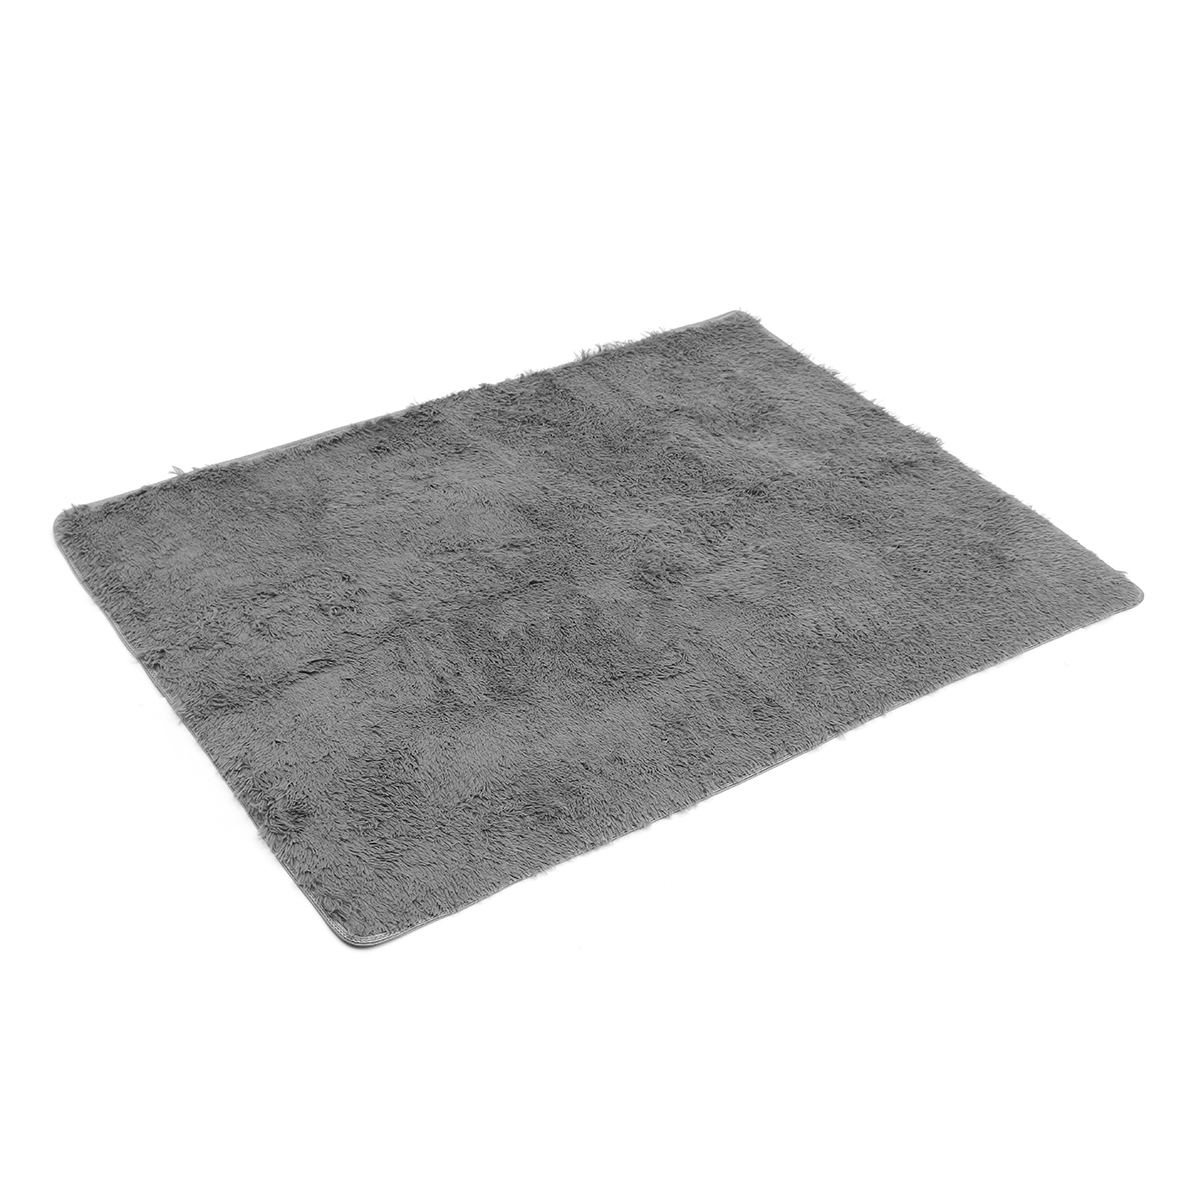 AU 160x230cm Large Shag Shaggy Floor Rug Soft Plush Home